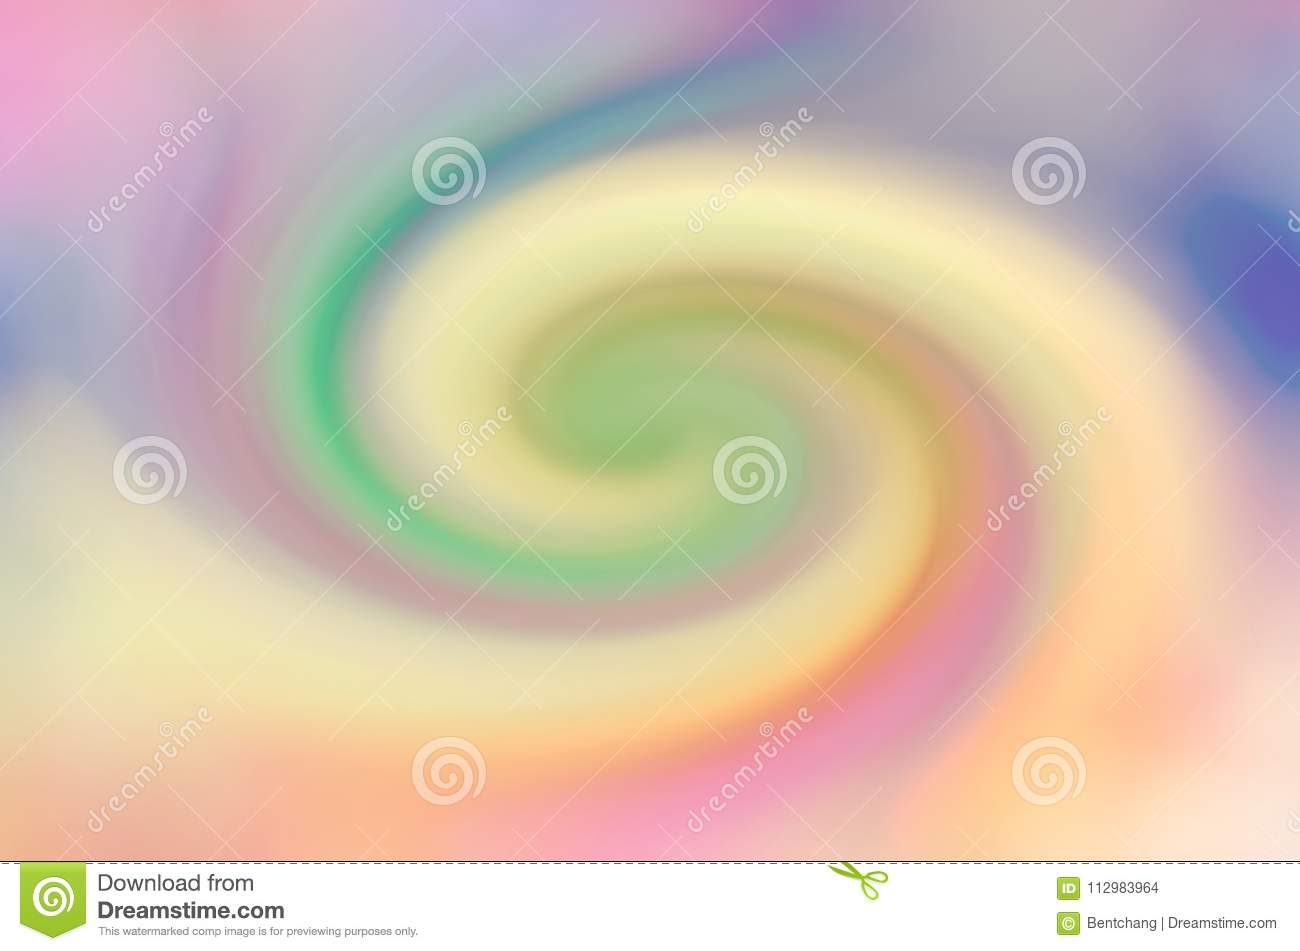 Motion blur, wallpaper or texture background. Bubble, abstract, red & pattern.